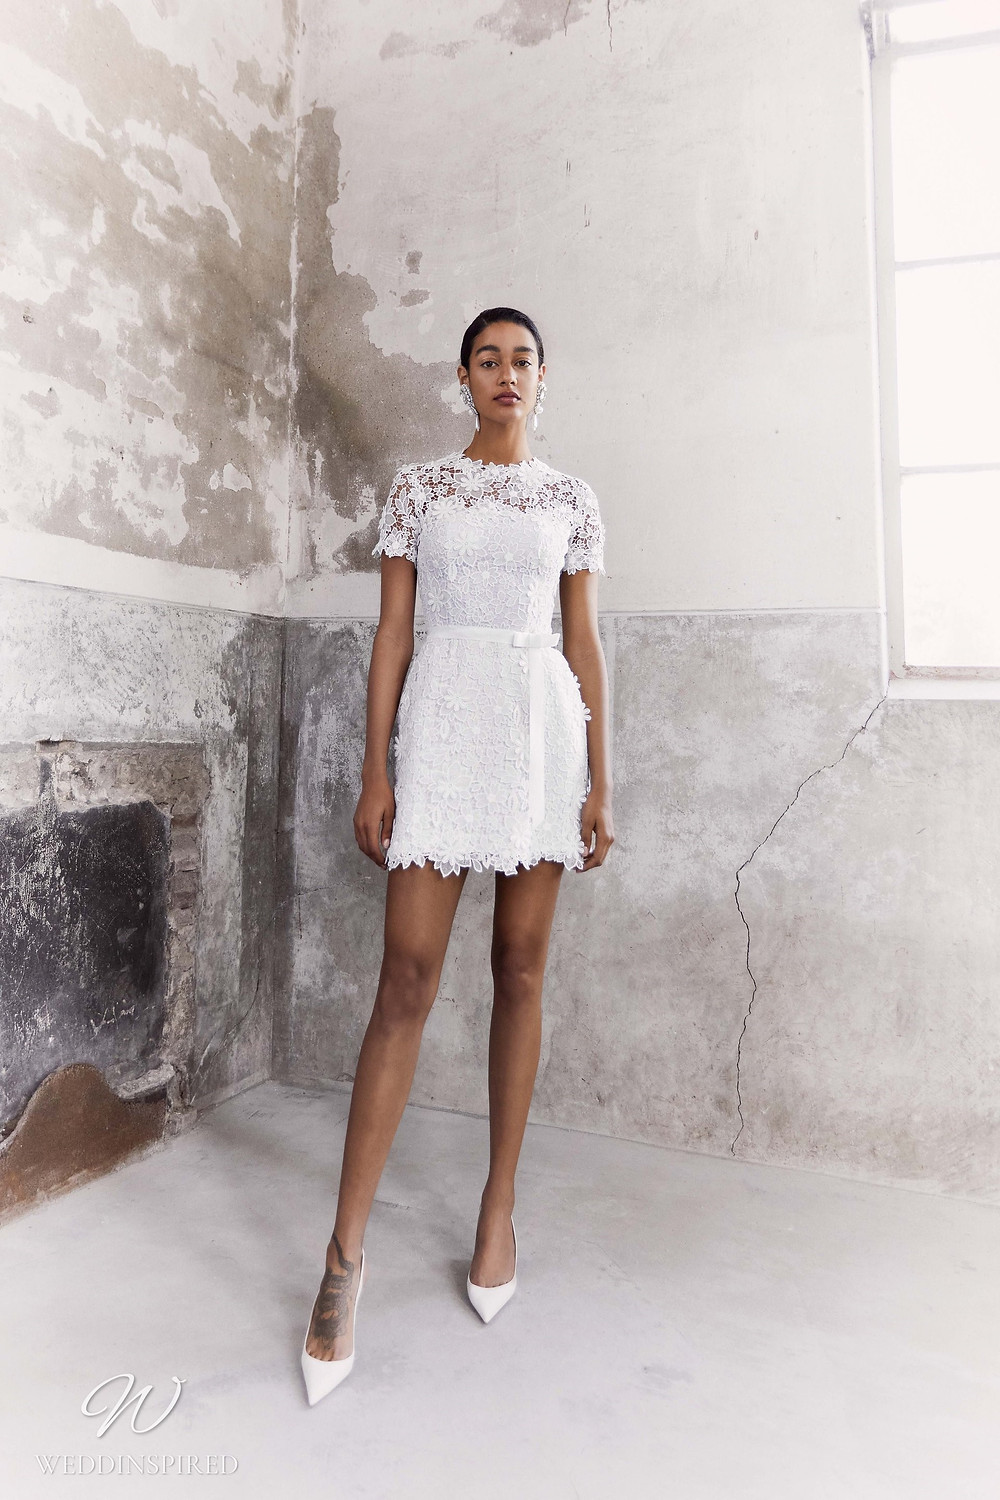 A Viktor & Rolf Fall/Winter 2021 short floral lace wedding dress with cap sleeves